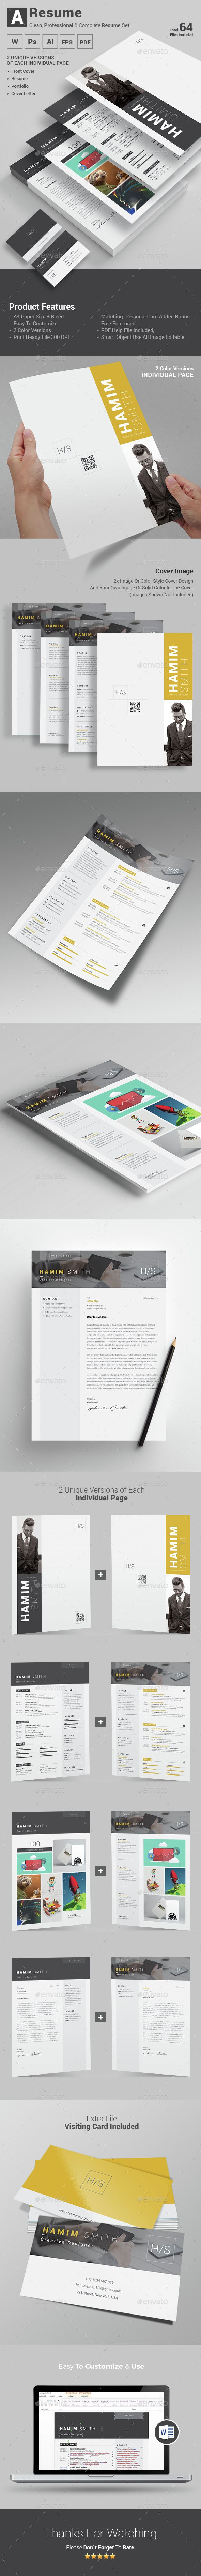 Functional Resume Template Microsoft%0A   Page   Front Cover   Resume Template   Cover Letter     Layout Portfolio  Template